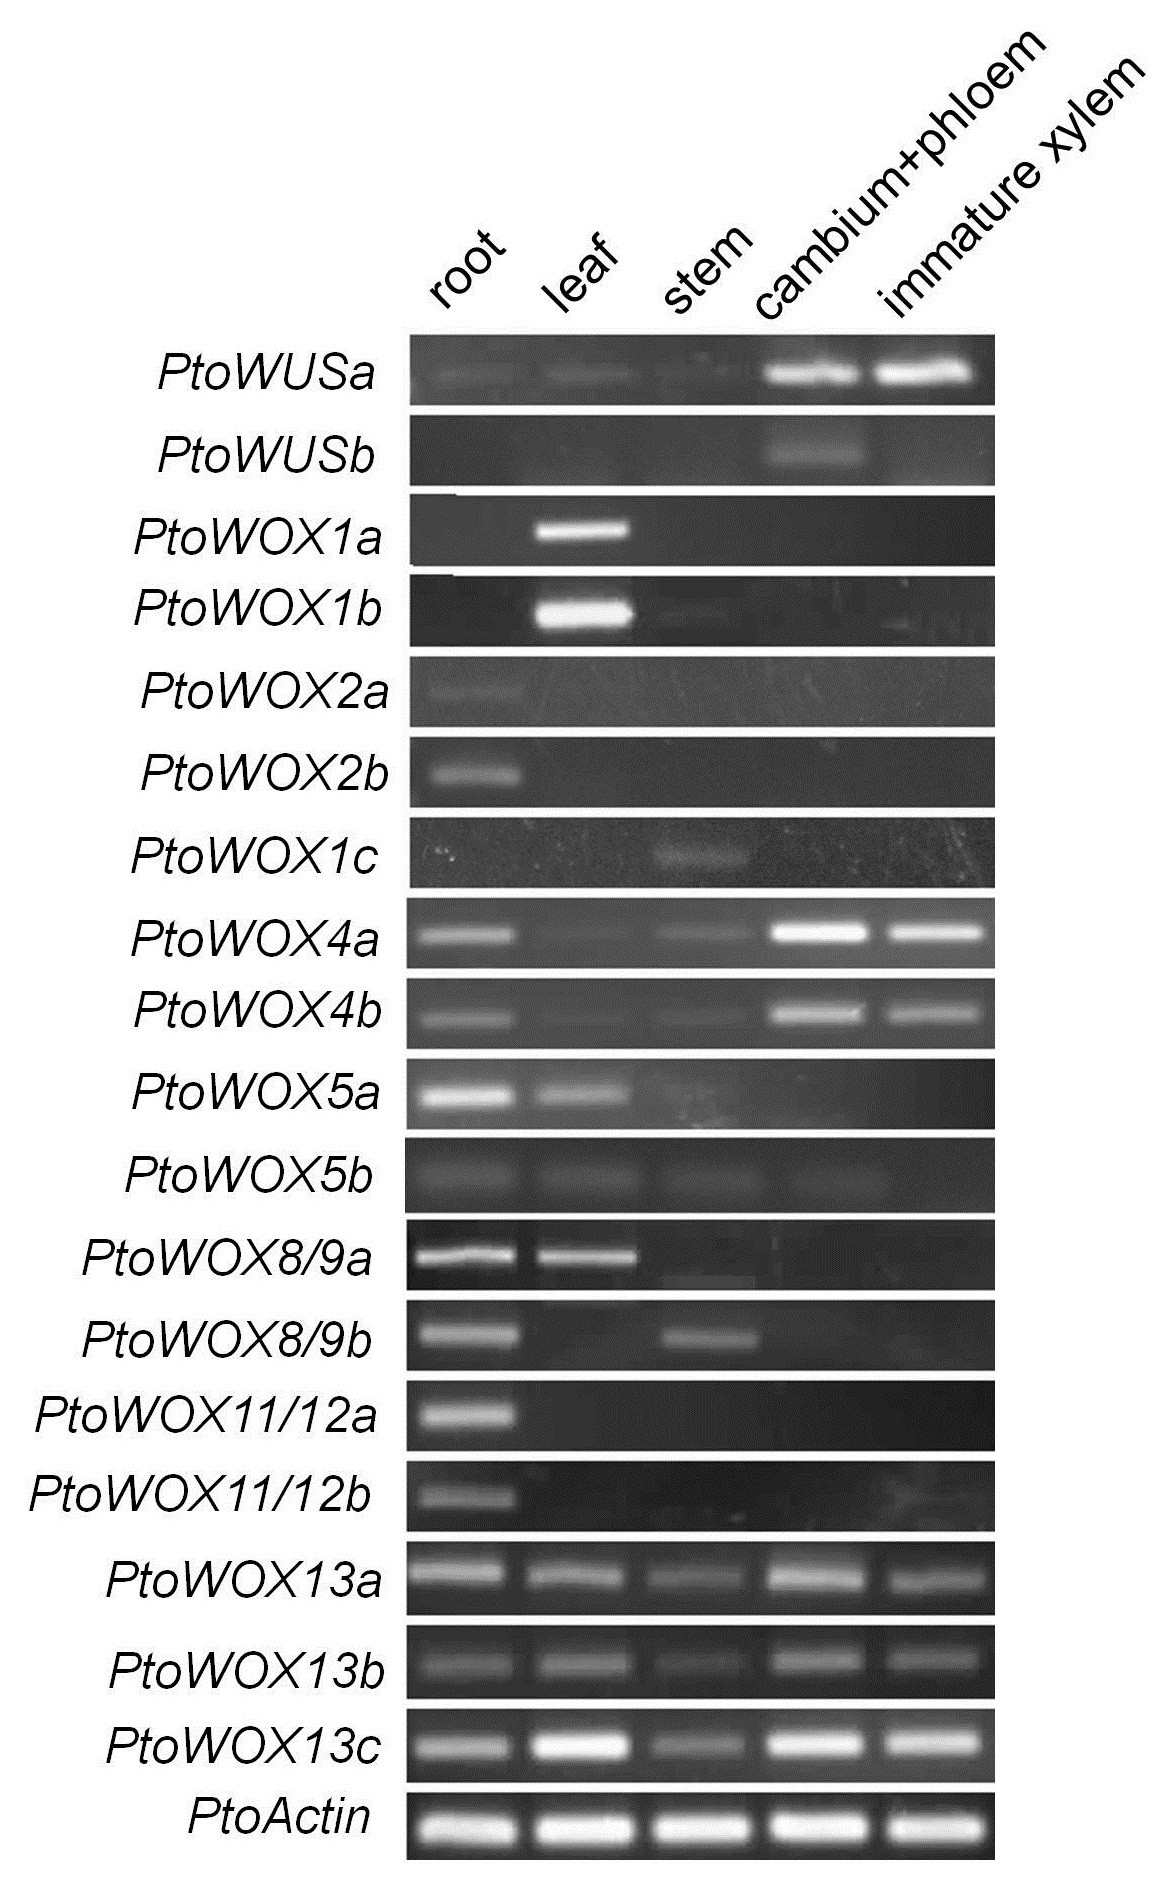 https://static-content.springer.com/image/art%3A10.1186%2F1471-2164-15-296/MediaObjects/12864_2013_Article_5988_Fig4_HTML.jpg